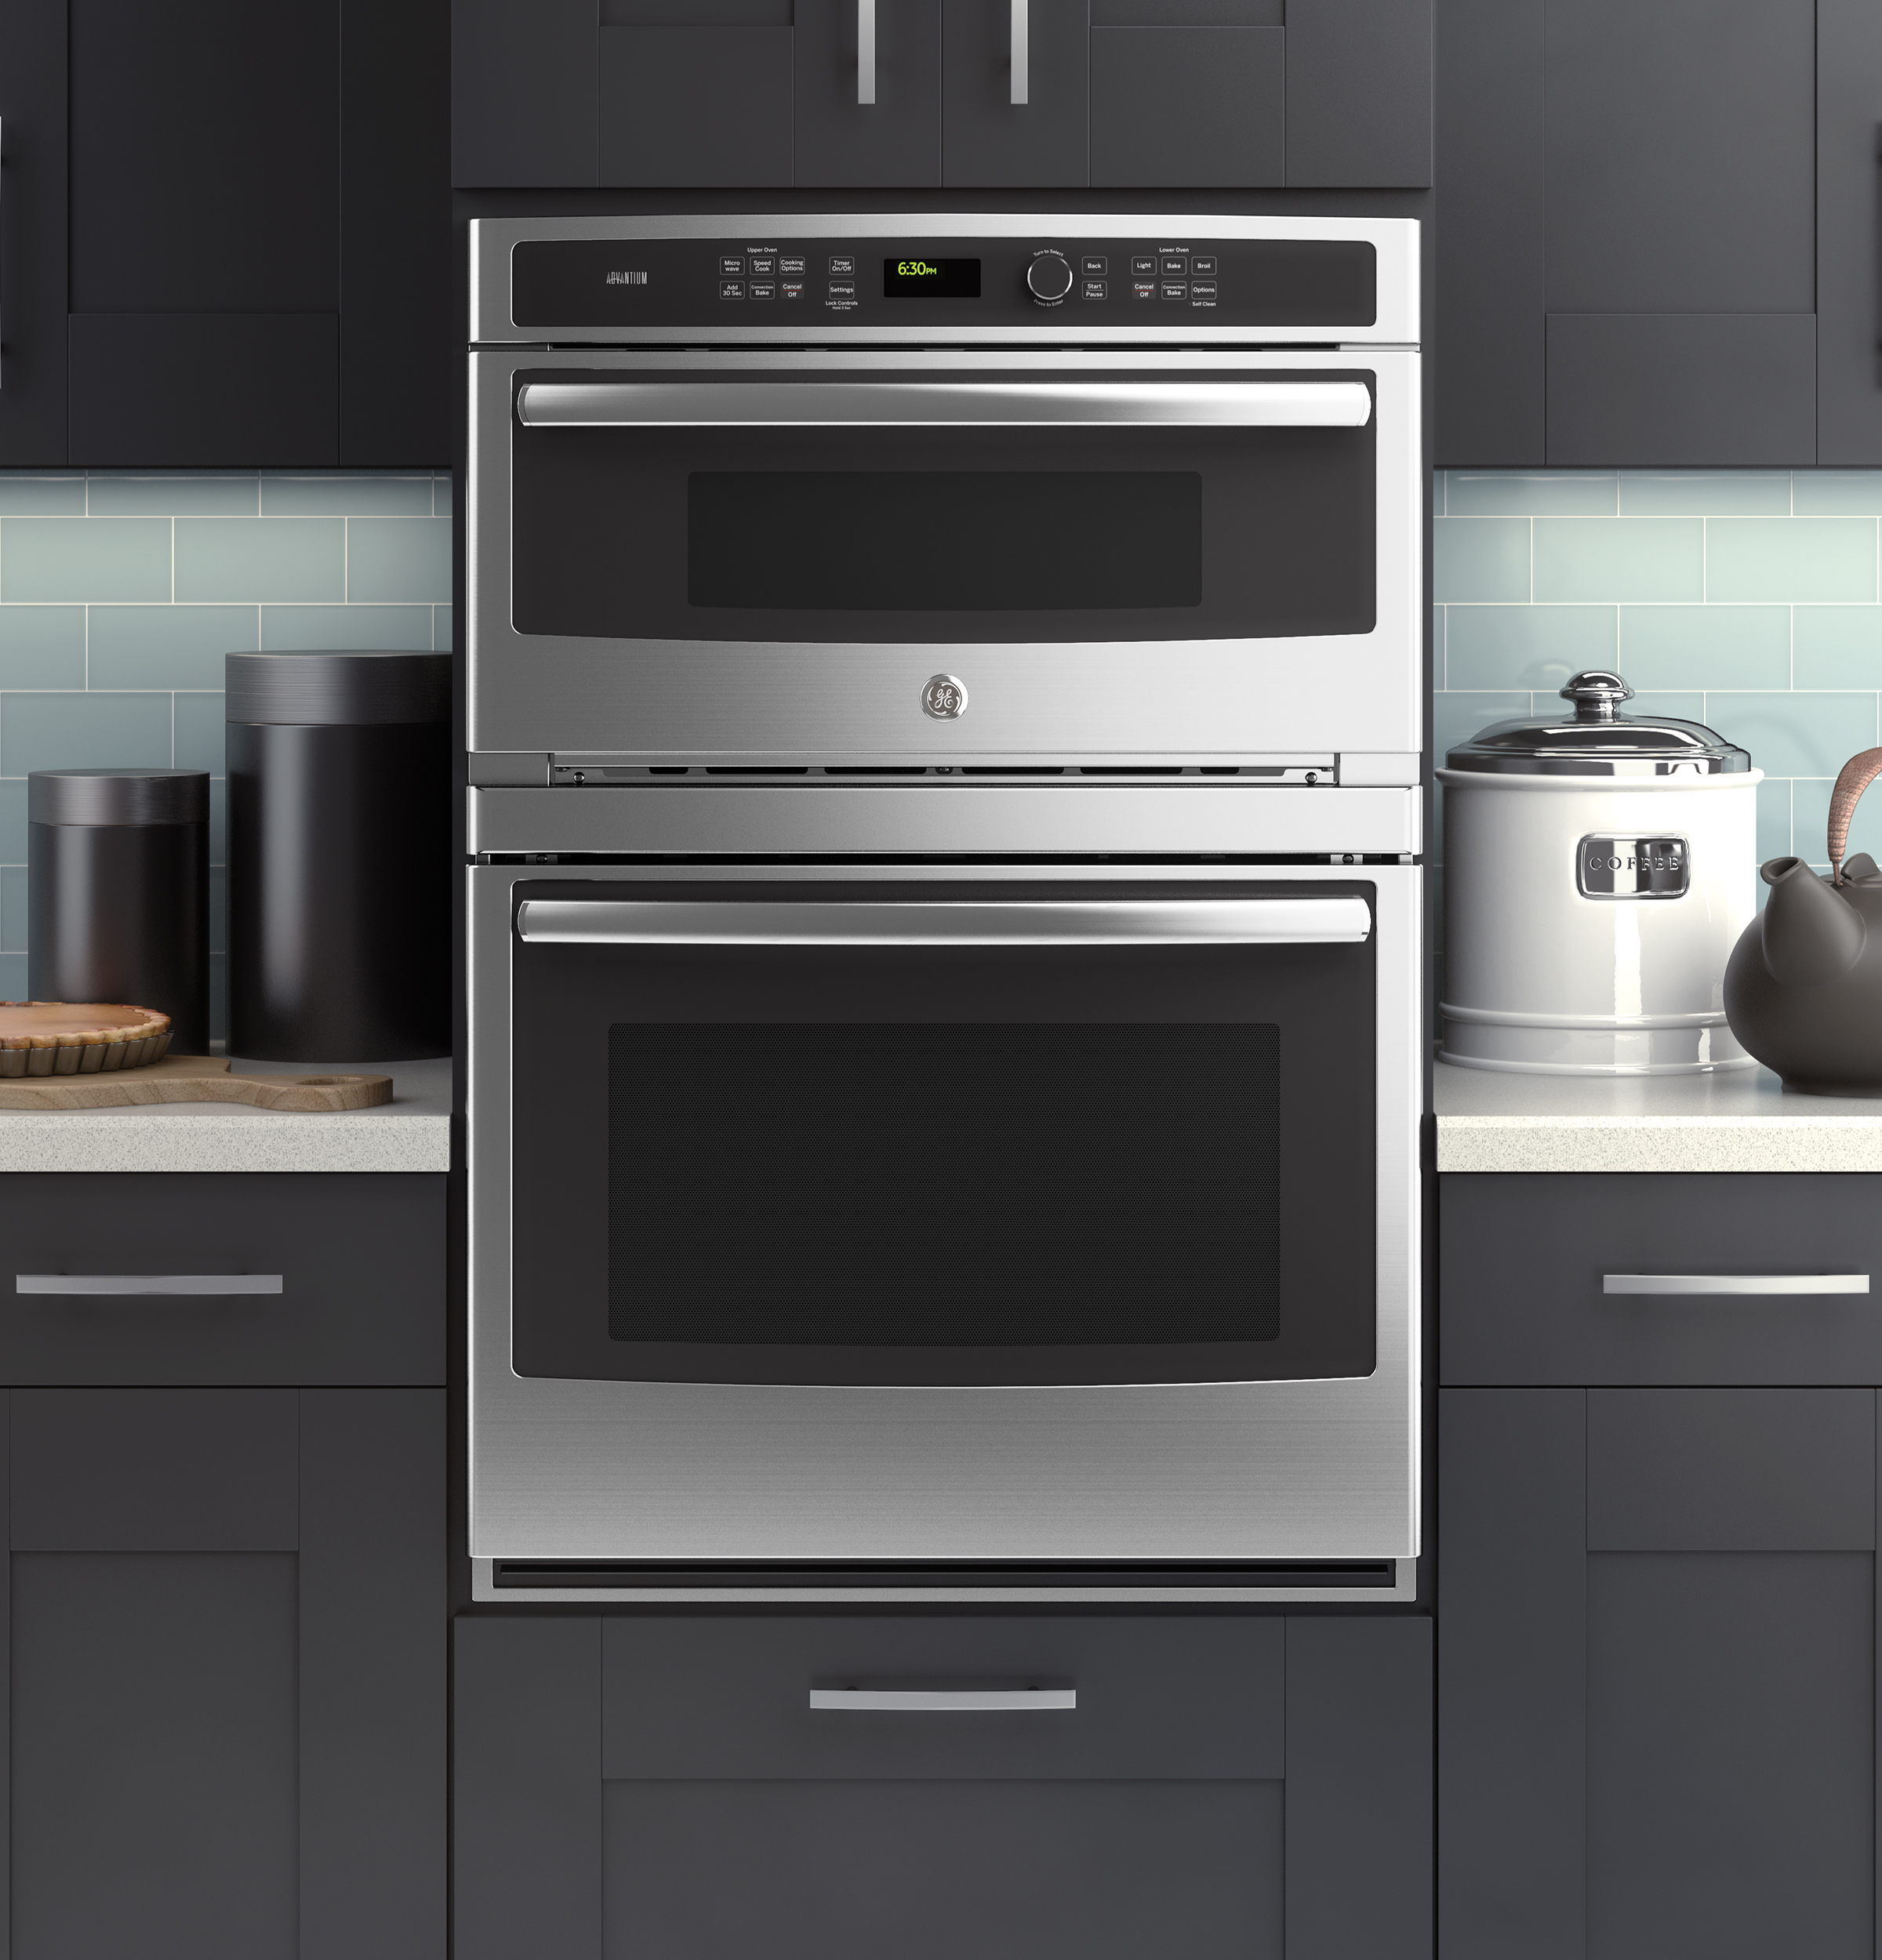 Attrayant GE Modernizes The Microwave/Wall Oven Combination With Its Popular  Advantium® Wall Oven   Business Wire